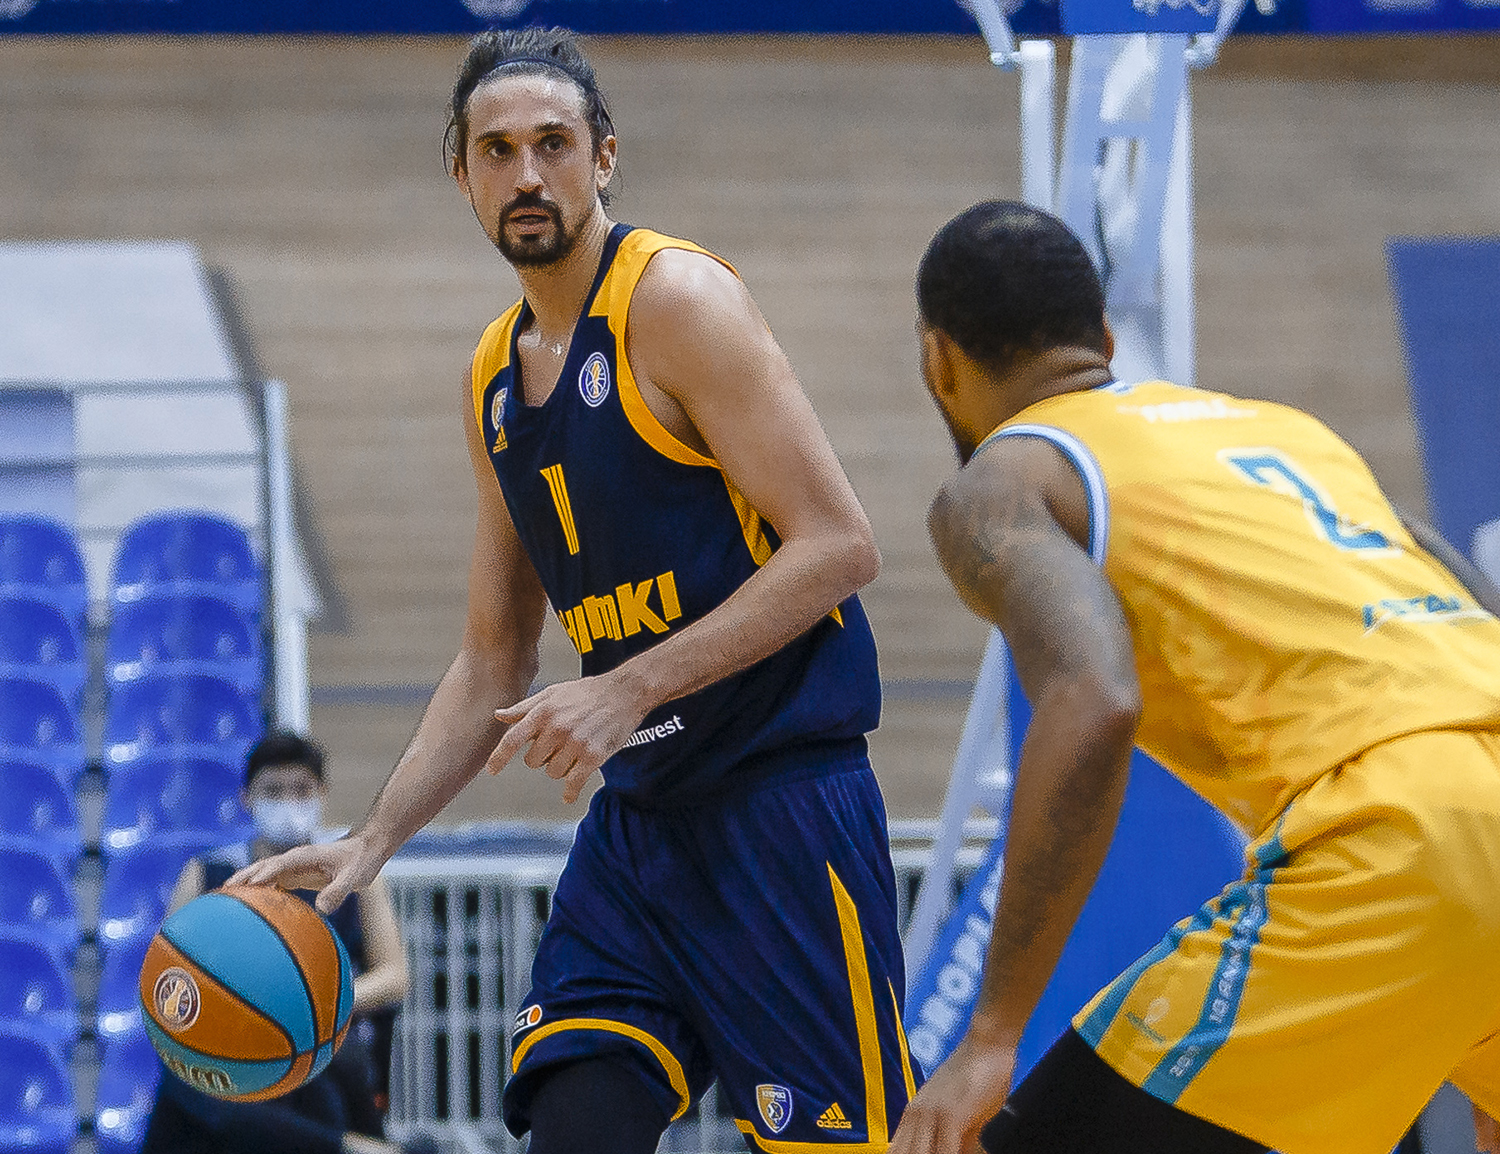 Khimki allow 0-21 run but win in Nur-Sultan